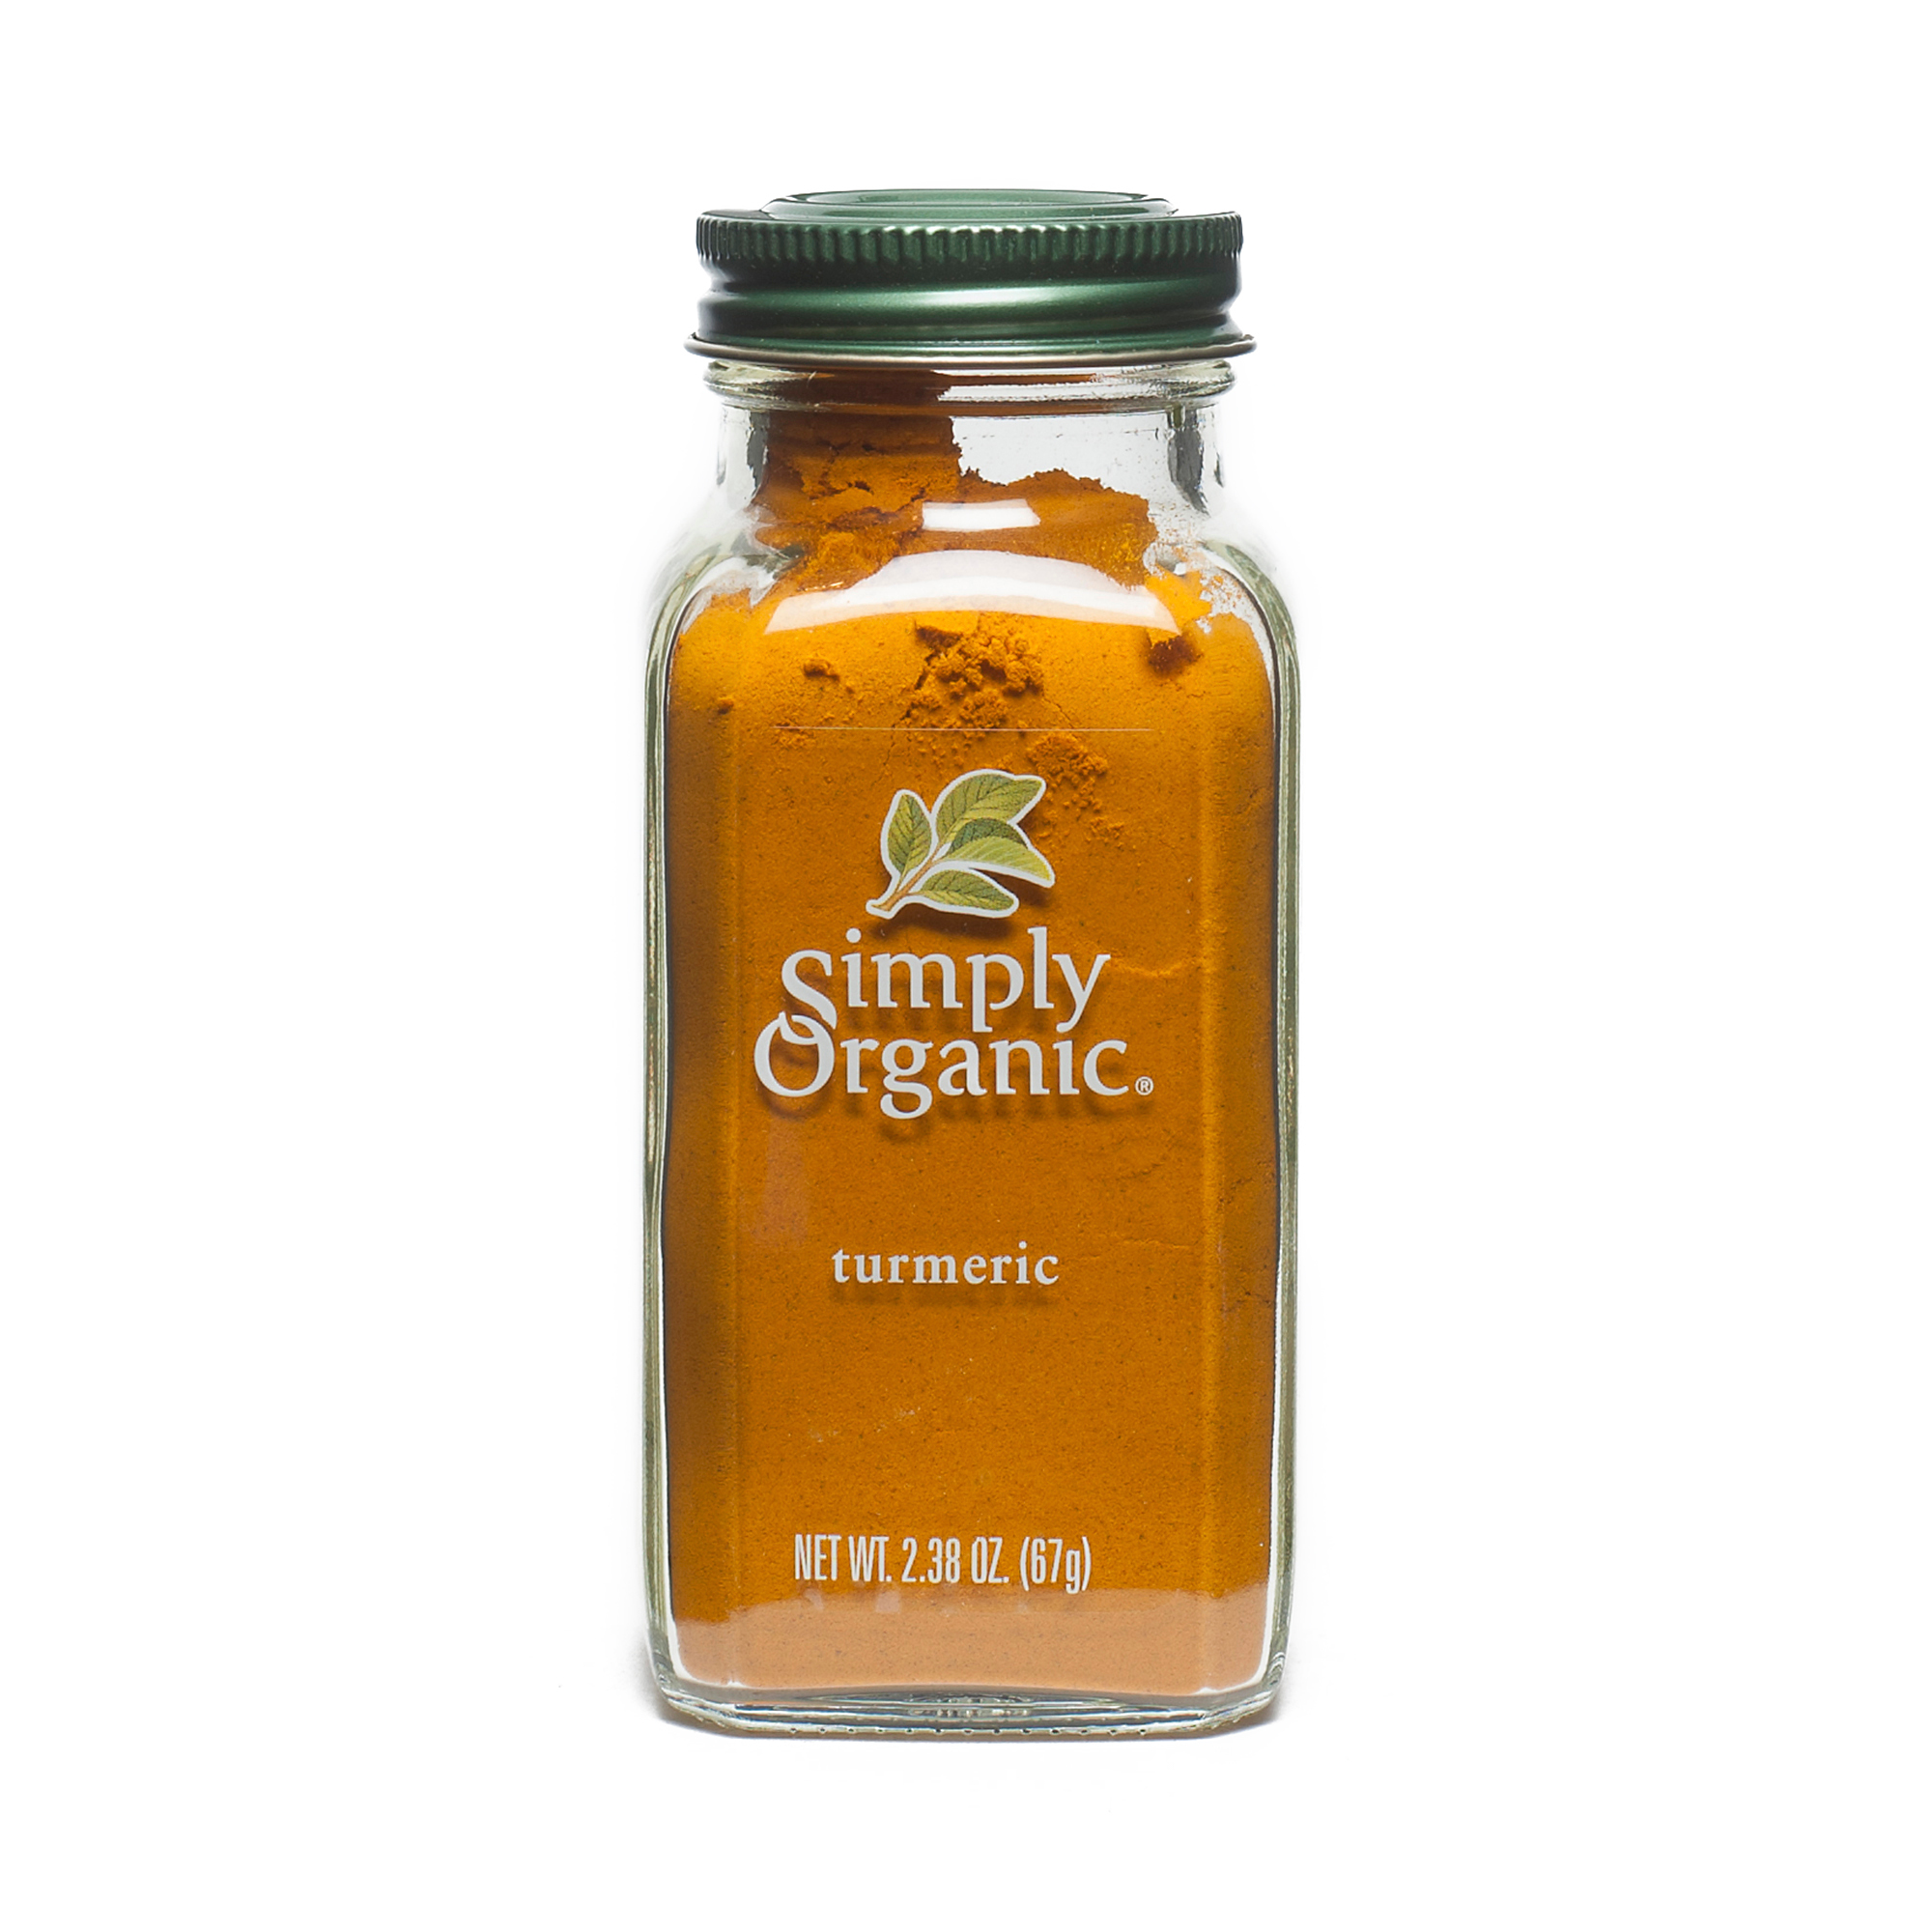 Simply Organic Ground Turmeric Root 2.38 oz container